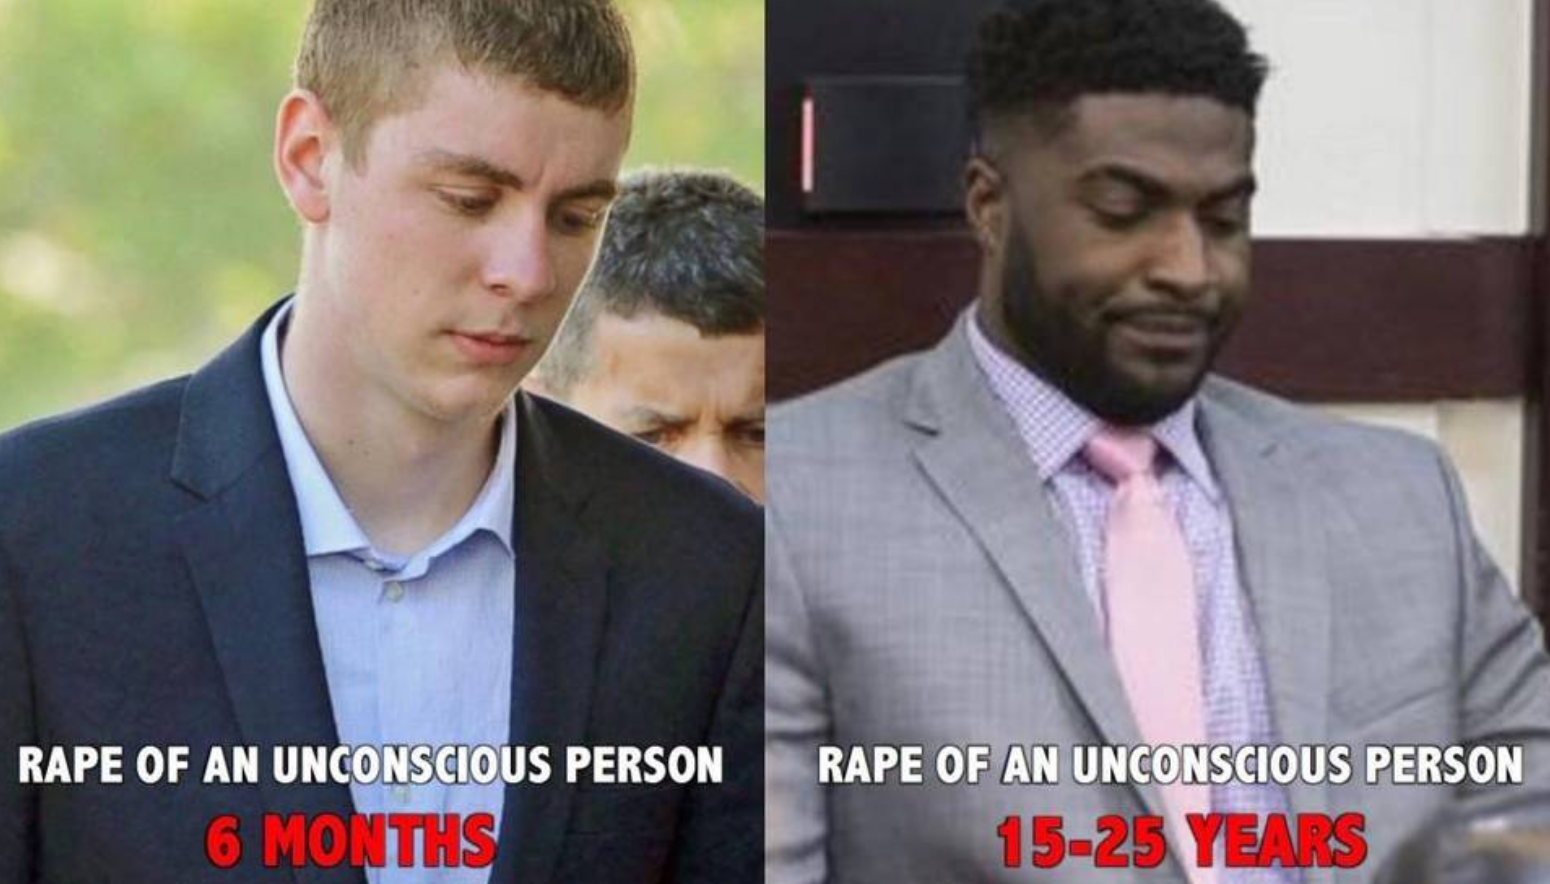 Popular memes like this one  compare Brock Turner and Cory Batey, a former Vanderbilt football player, who is expecting 15-25 years in prison for a similar crime.